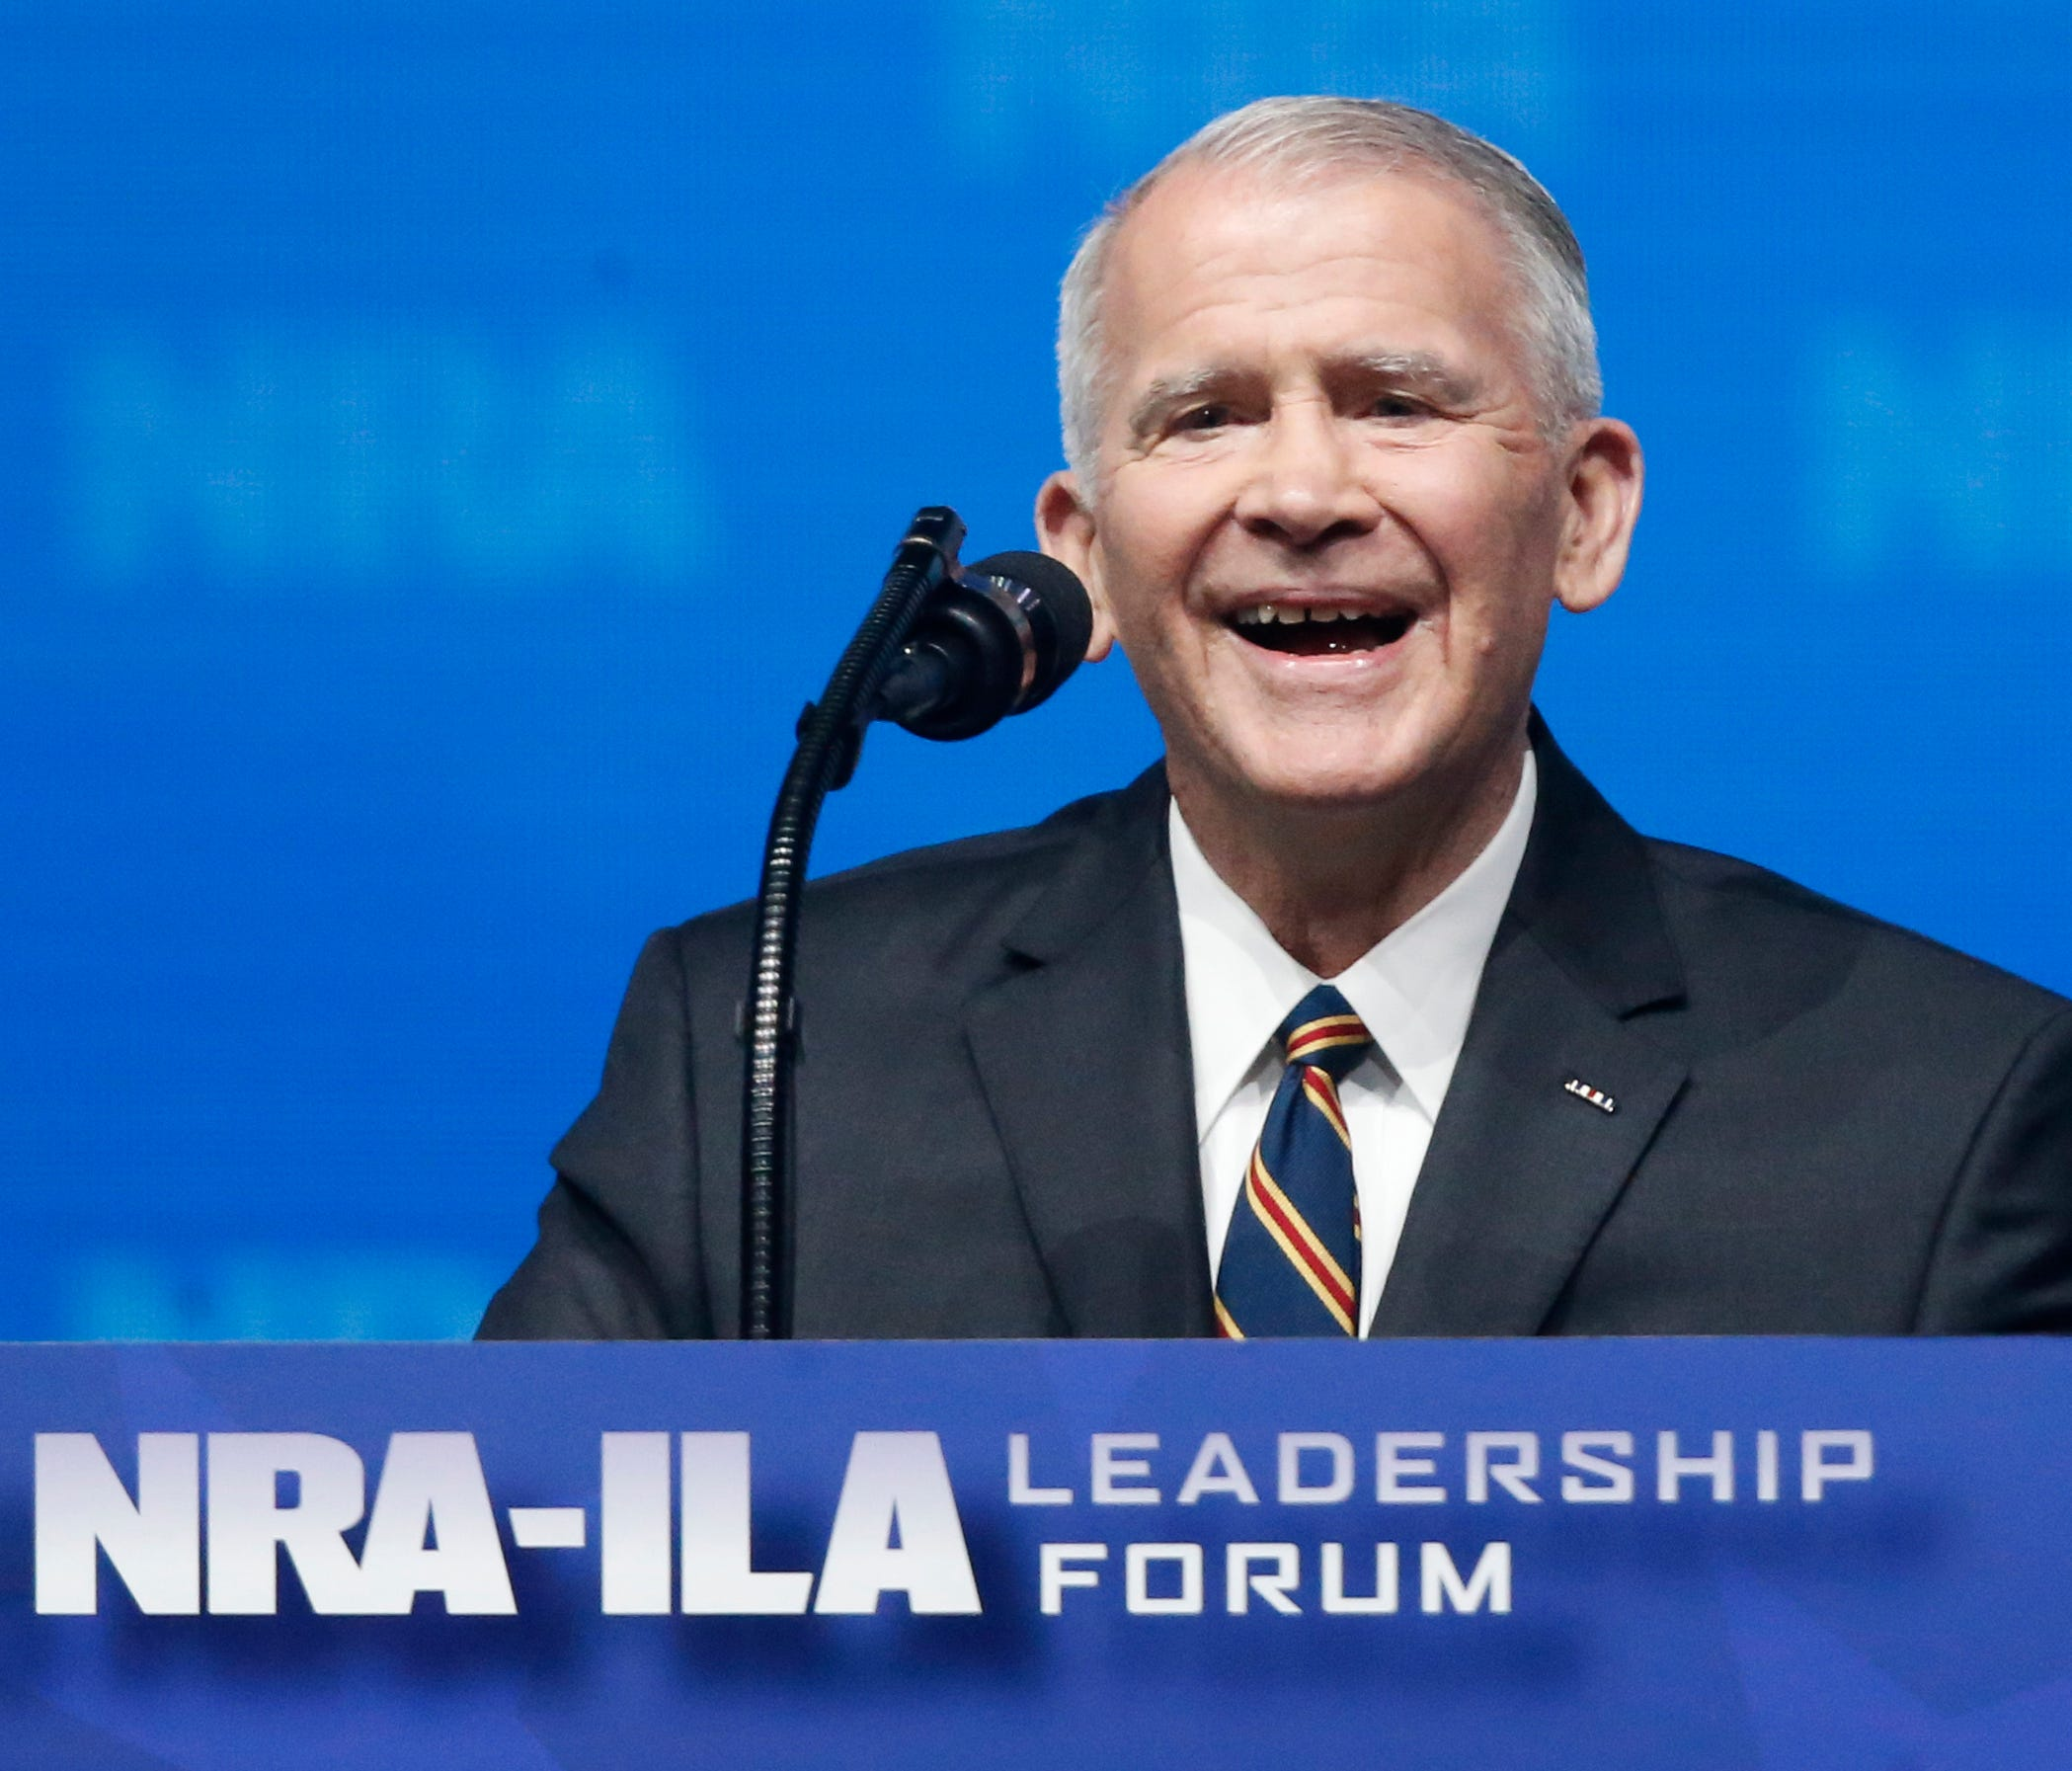 Former U.S. Marine Lt. Col. Oliver North speaks before giving the Invocation at the National Rifle Association-Institute for Legislative Action Leadership Forum in Dallas, May 4, 2018.